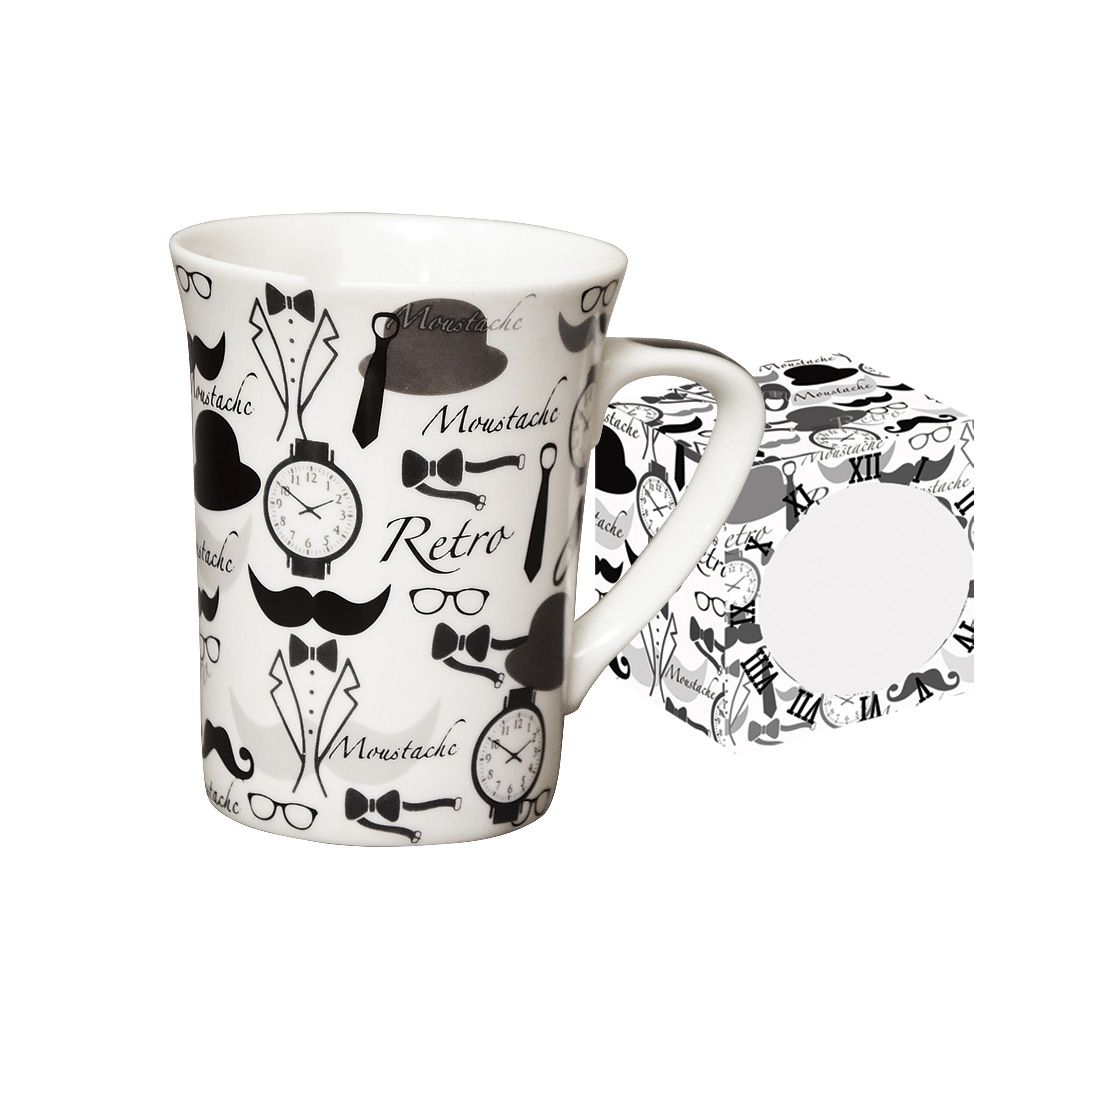 Caneca de Porcelana Fina 330Ml Retro